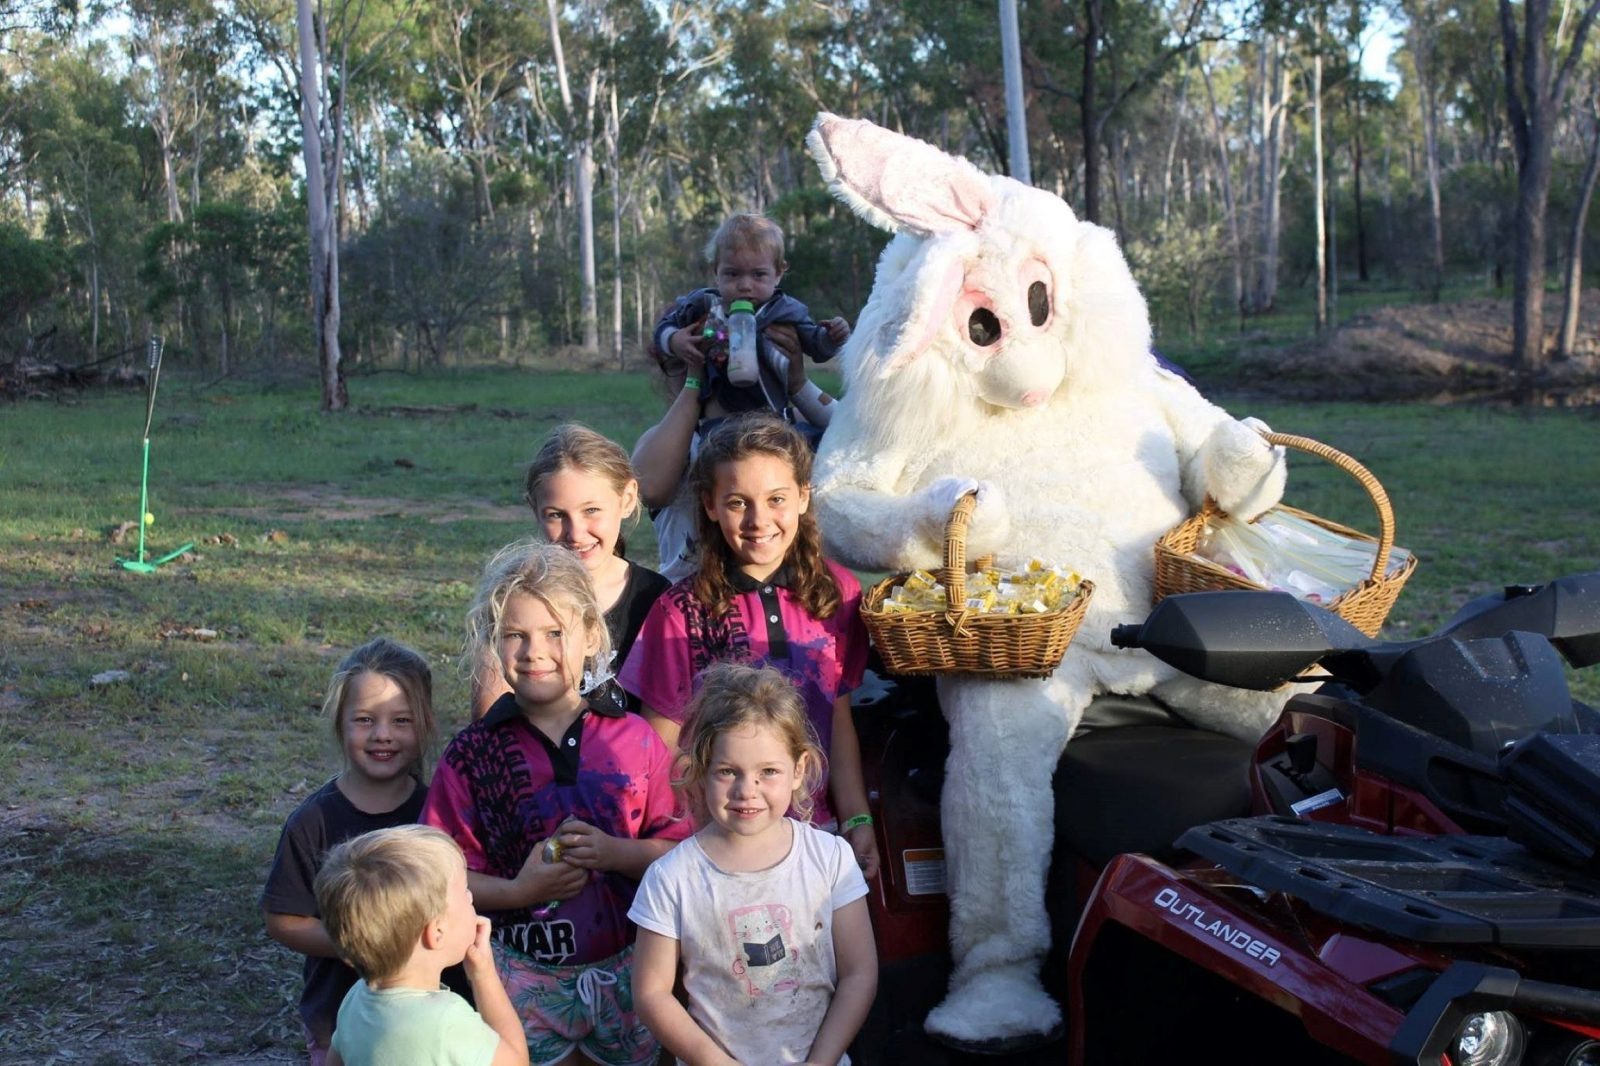 Group photo with the Easter Bunny